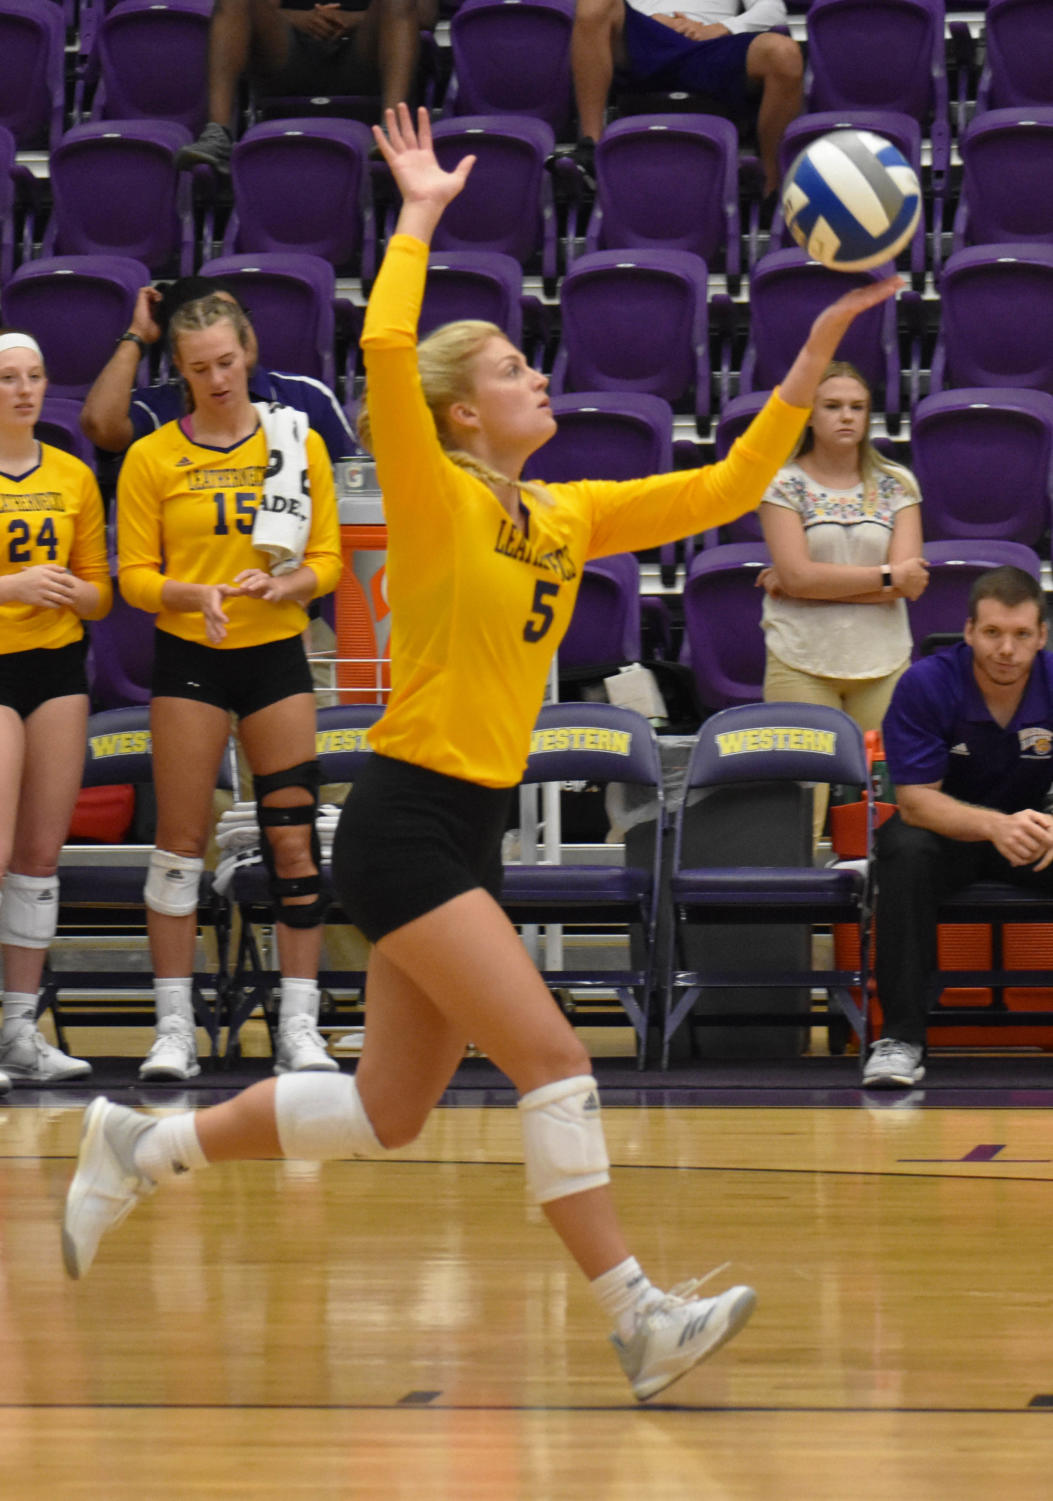 Jaime Johnson serving the ball at a home game.